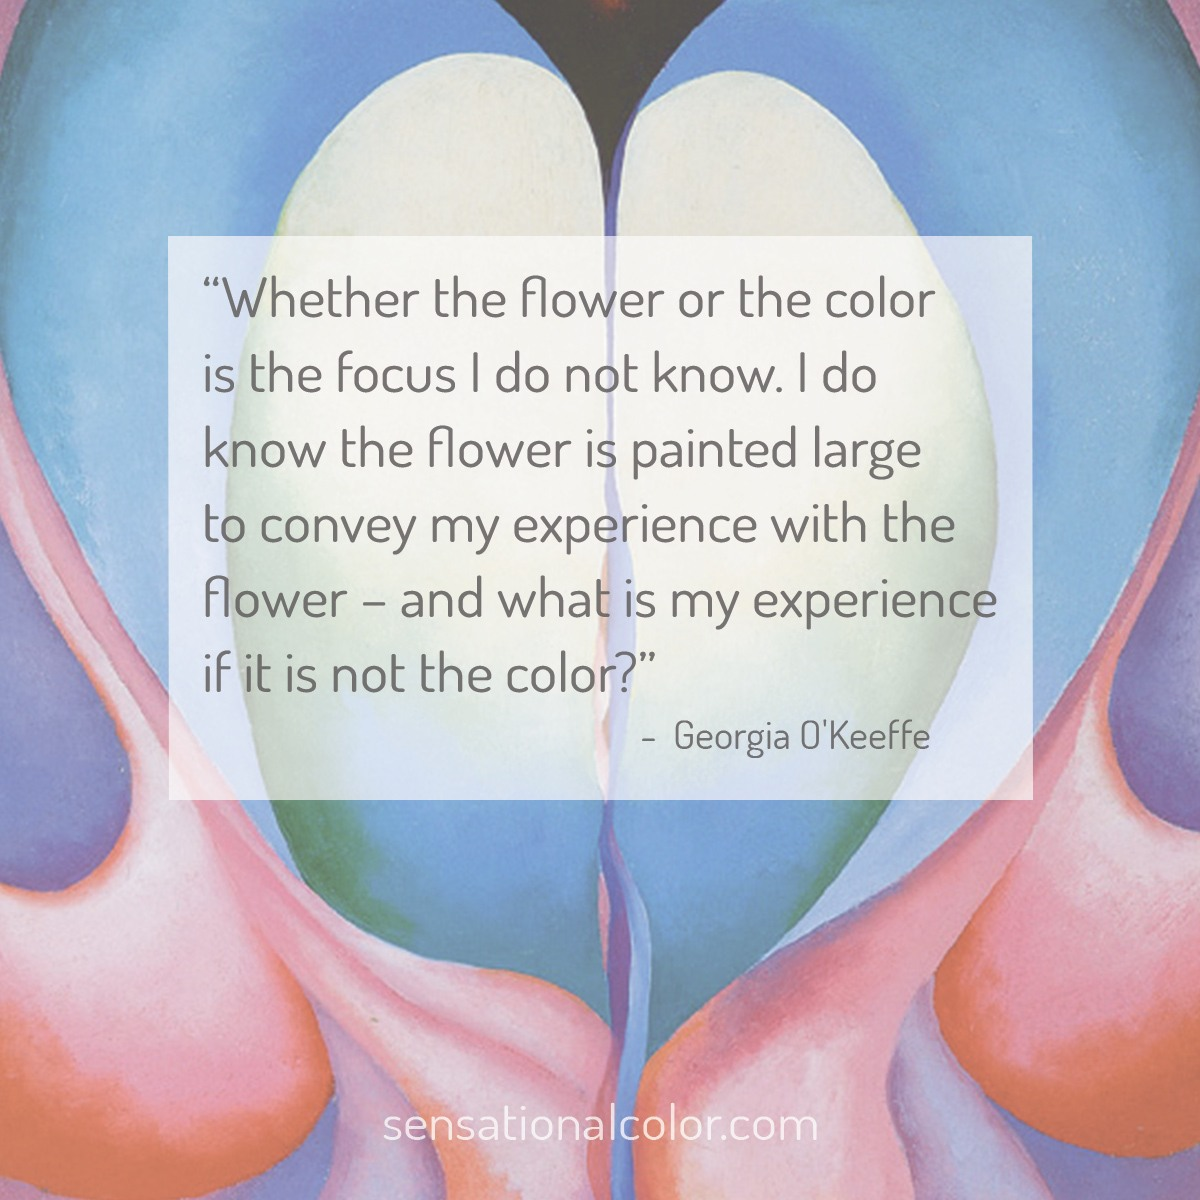 """Whether the flower or the color is the focus I do not know. I do know the flower is painted large to convey my experience with the flower – and what is my experience if it is not the color?"" - Georgia O'Keeffe"